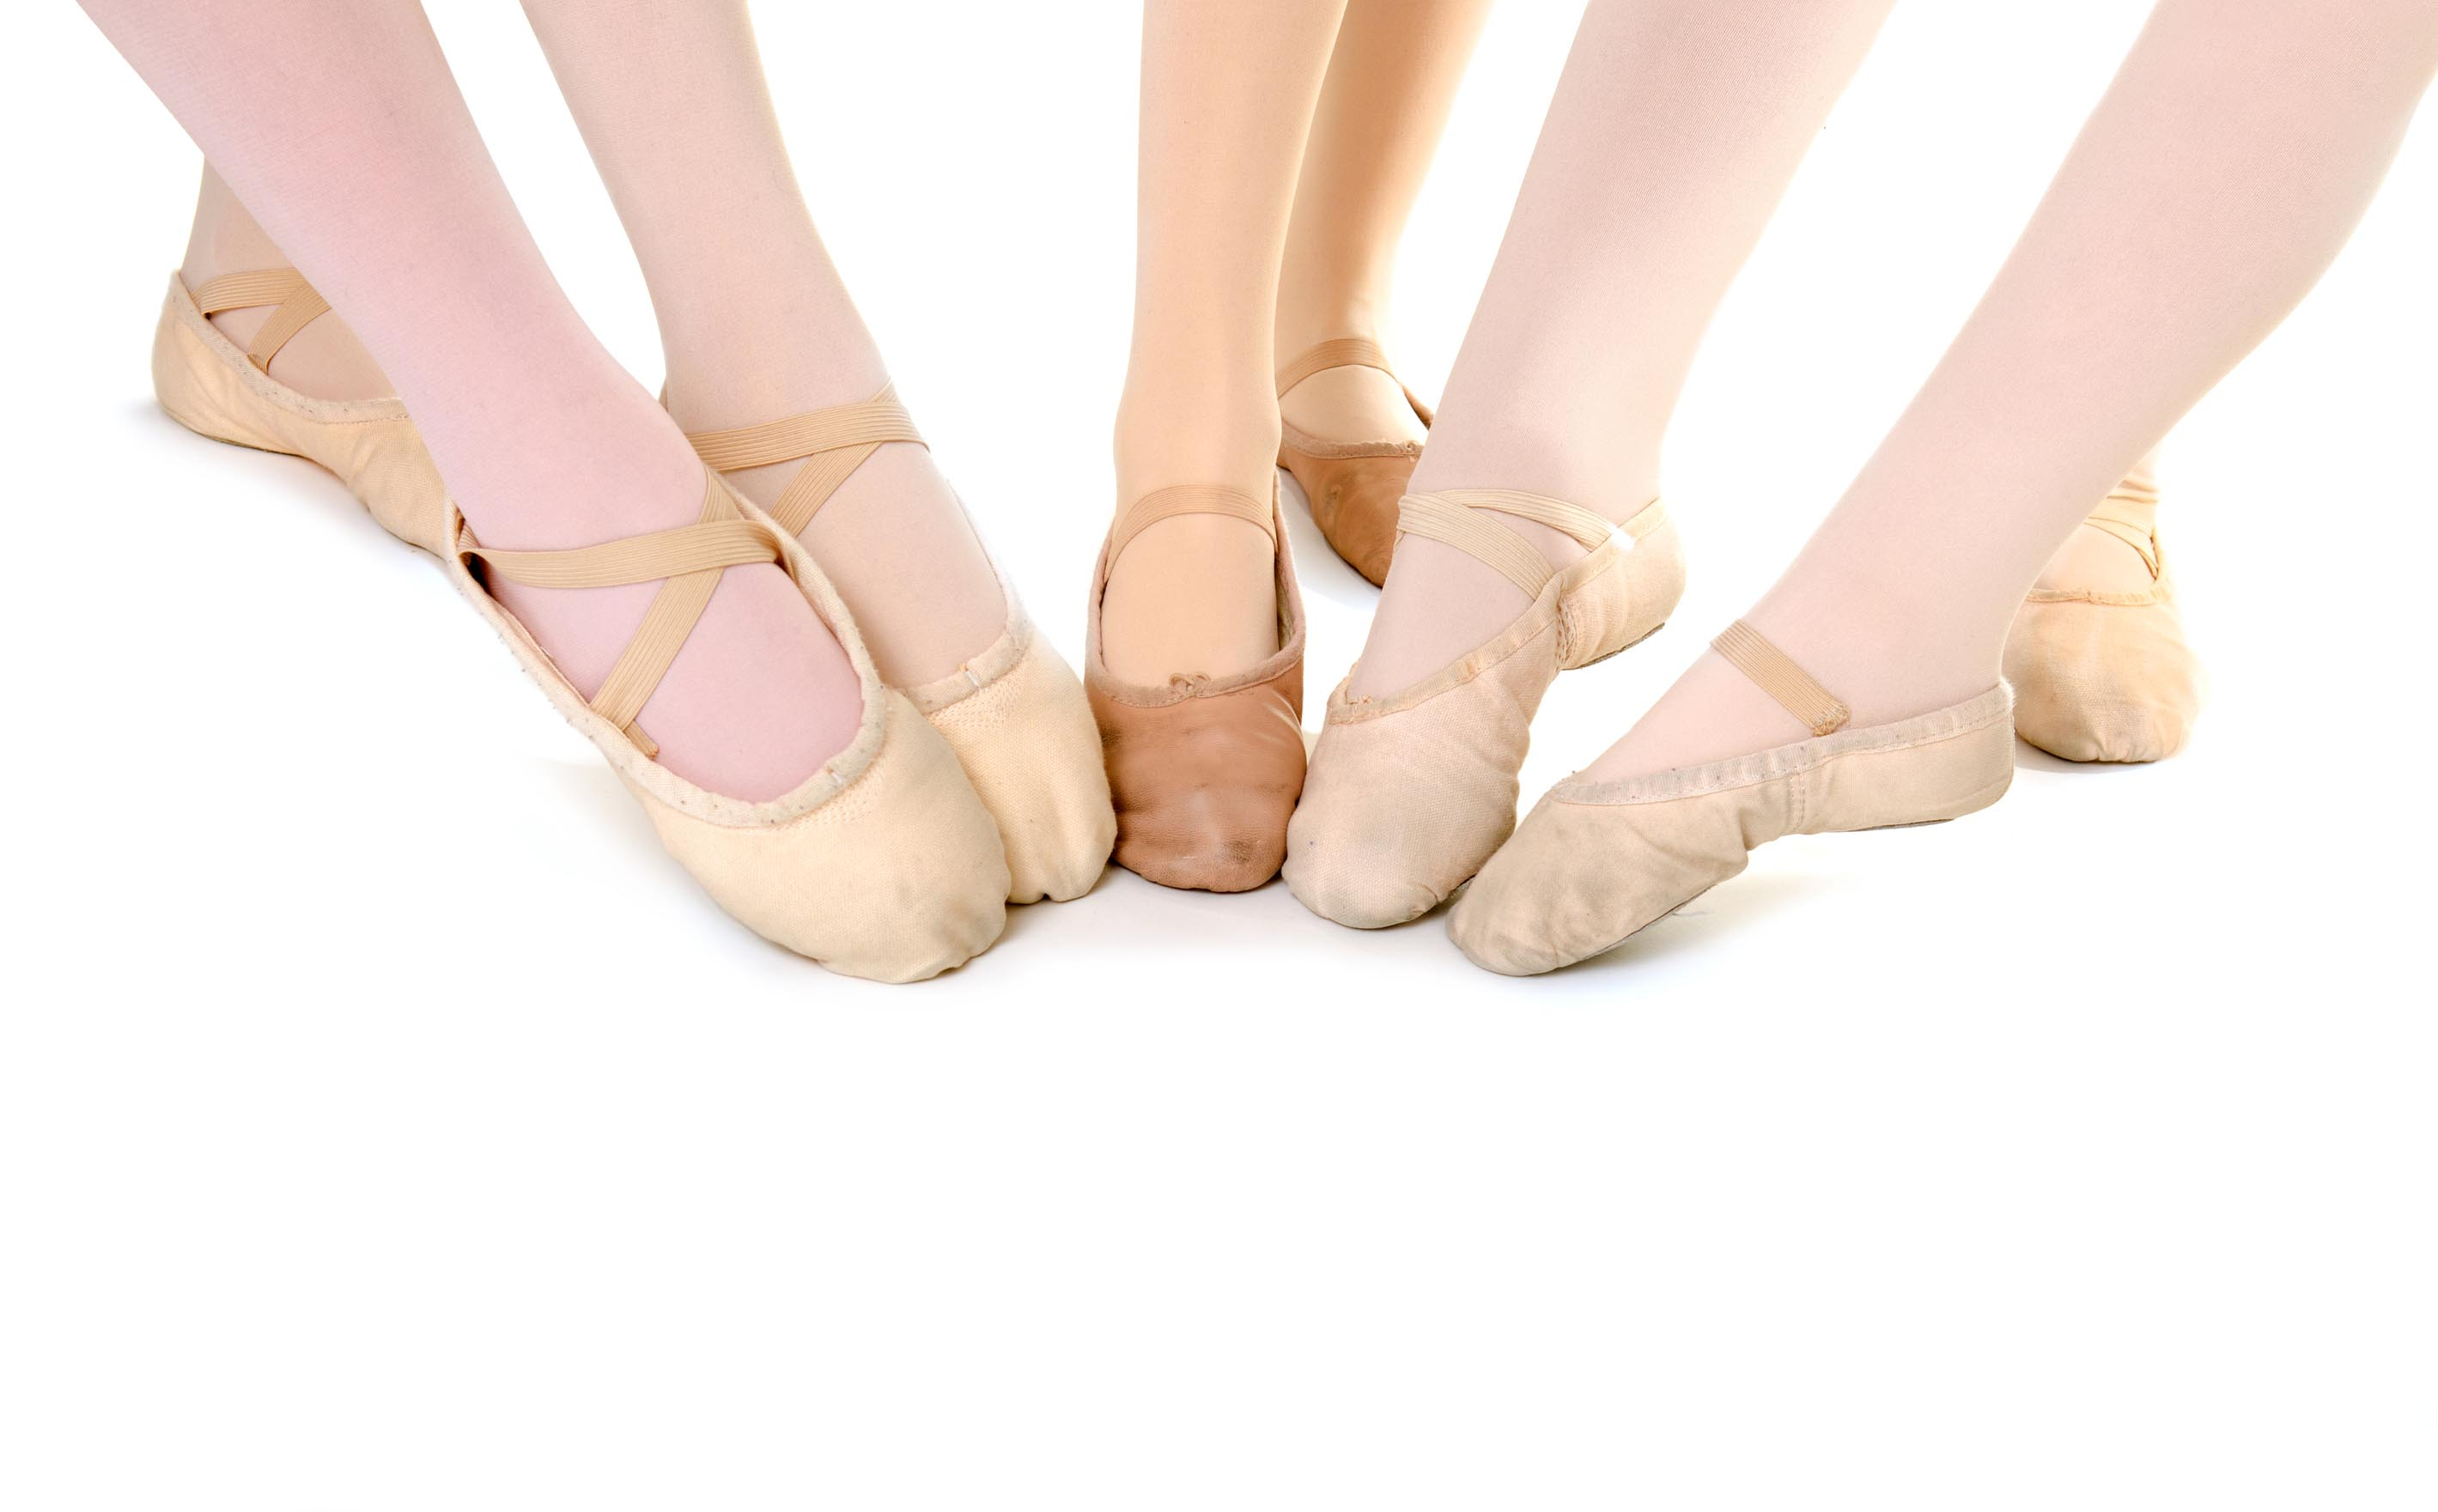 Choosing ballet slippers for dance class